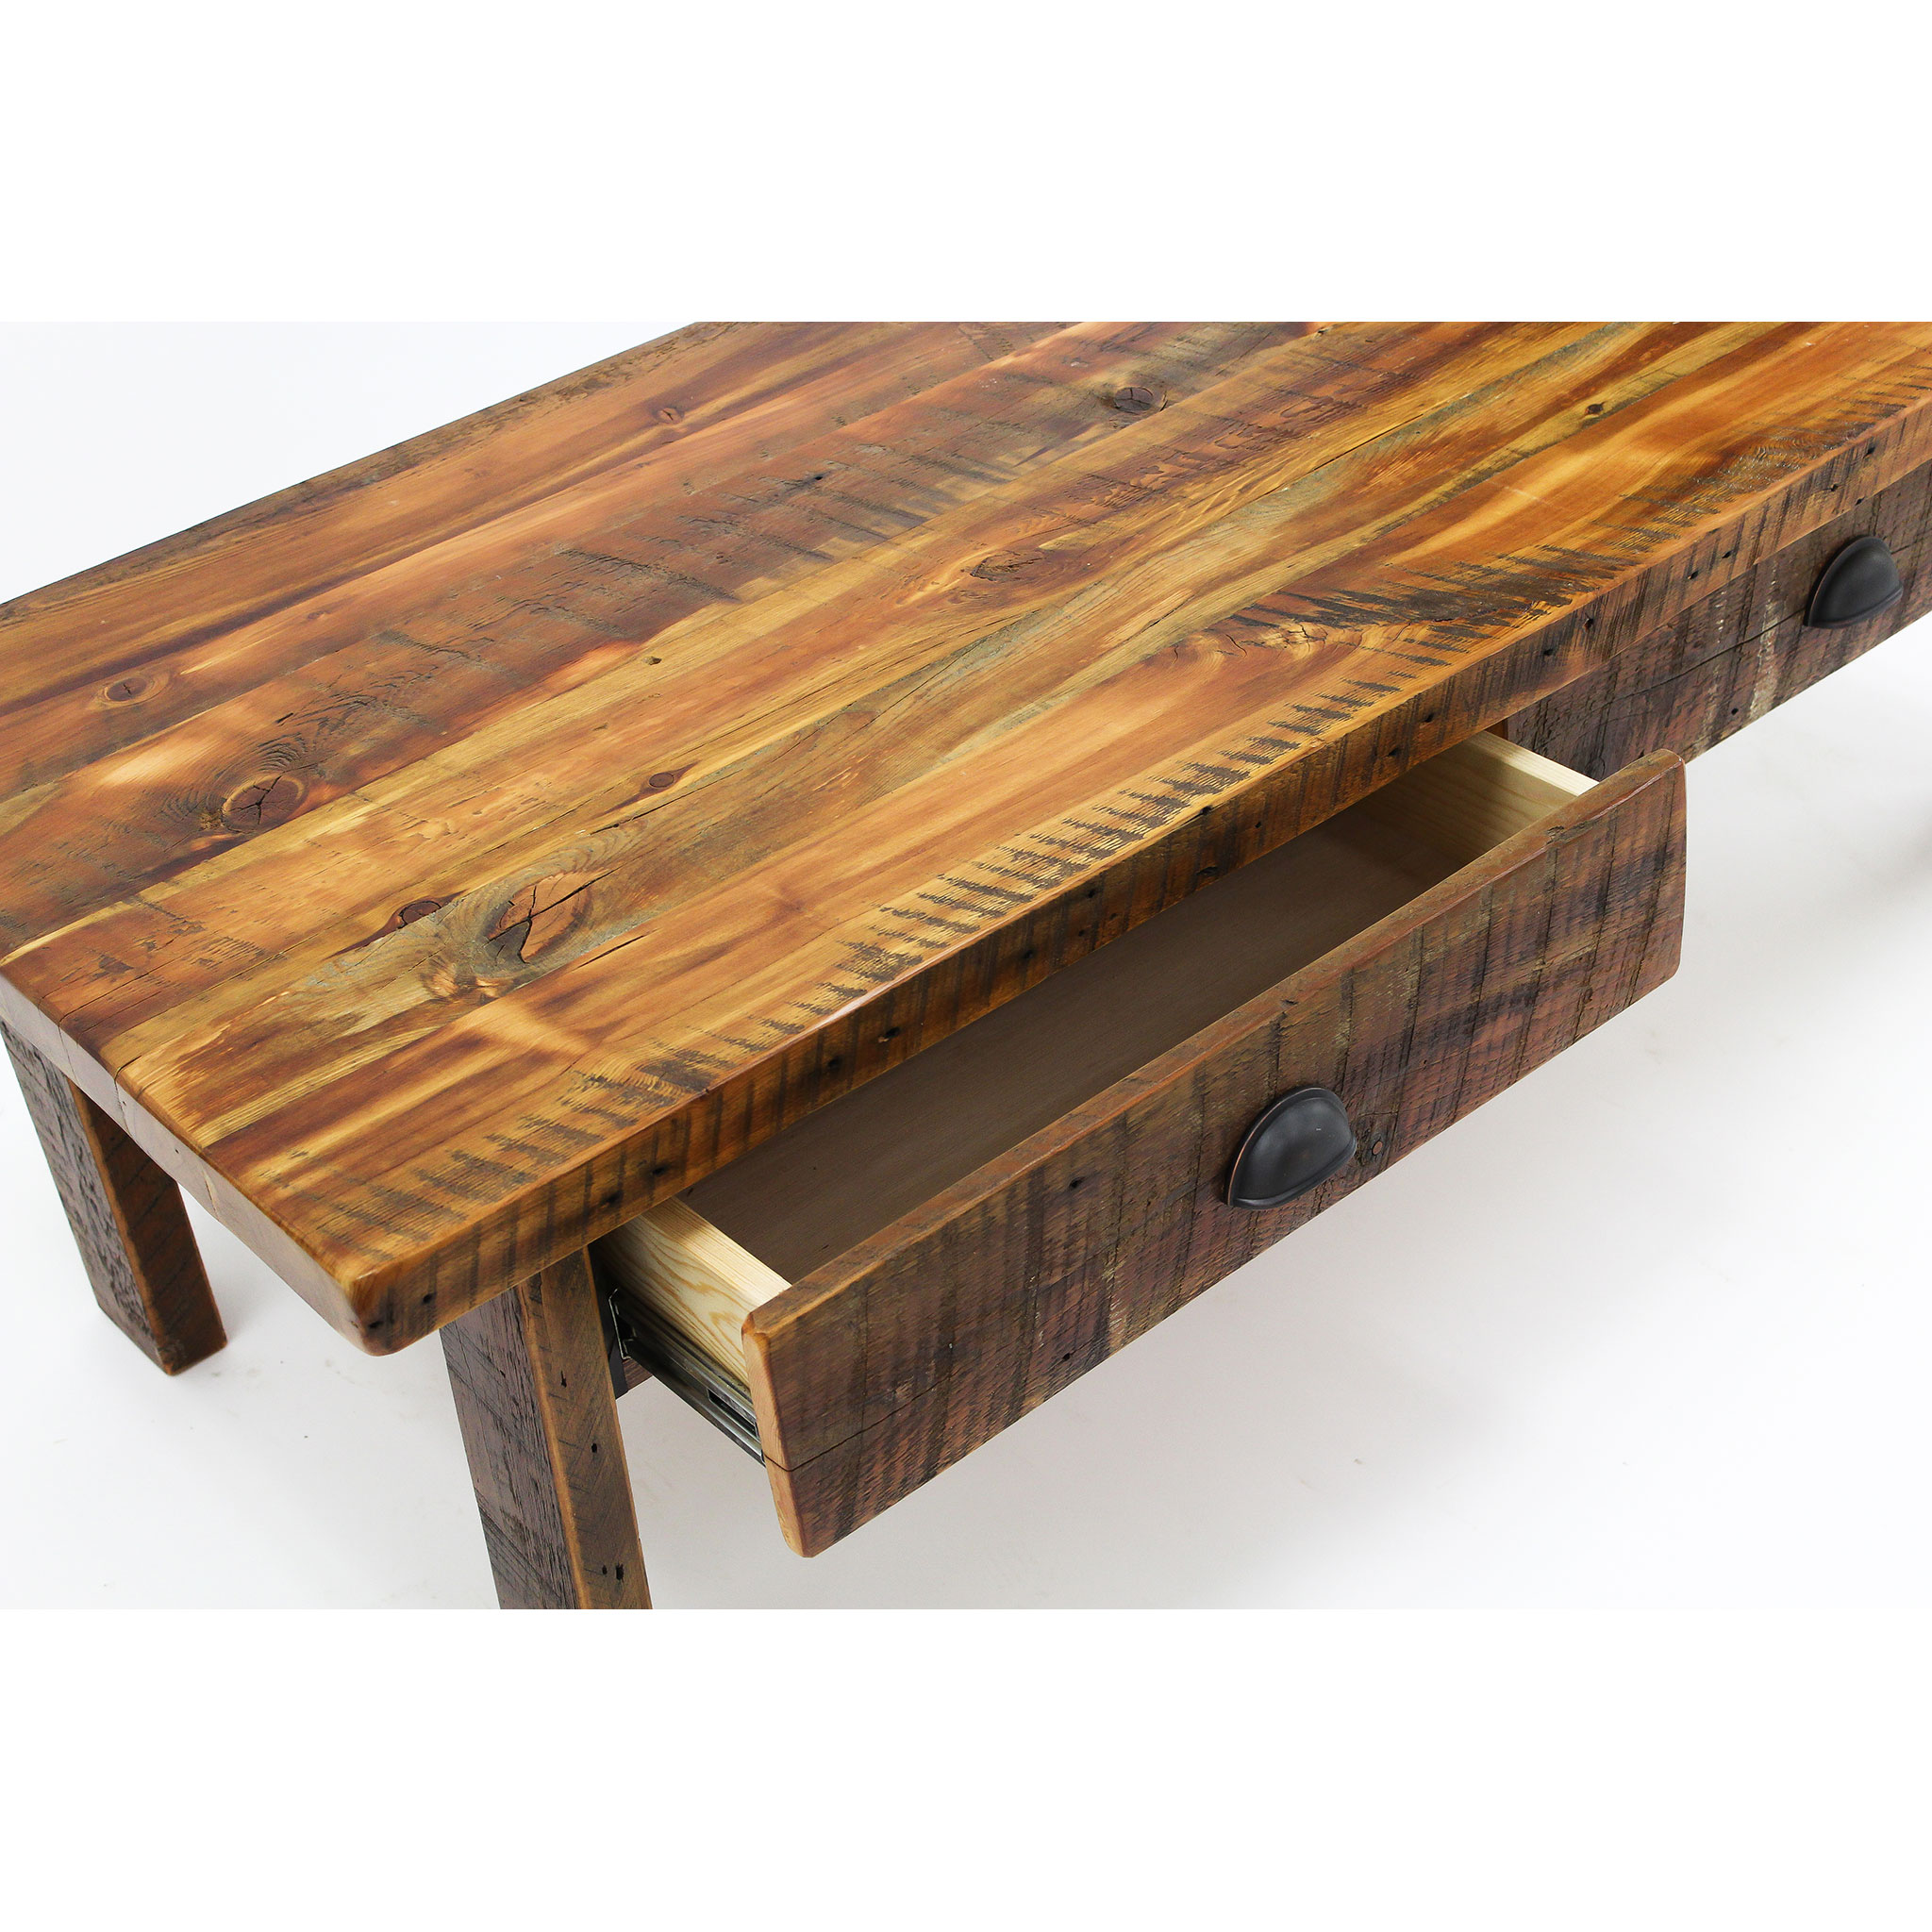 Reclaimed Wood Coffee Table With Drawers 5